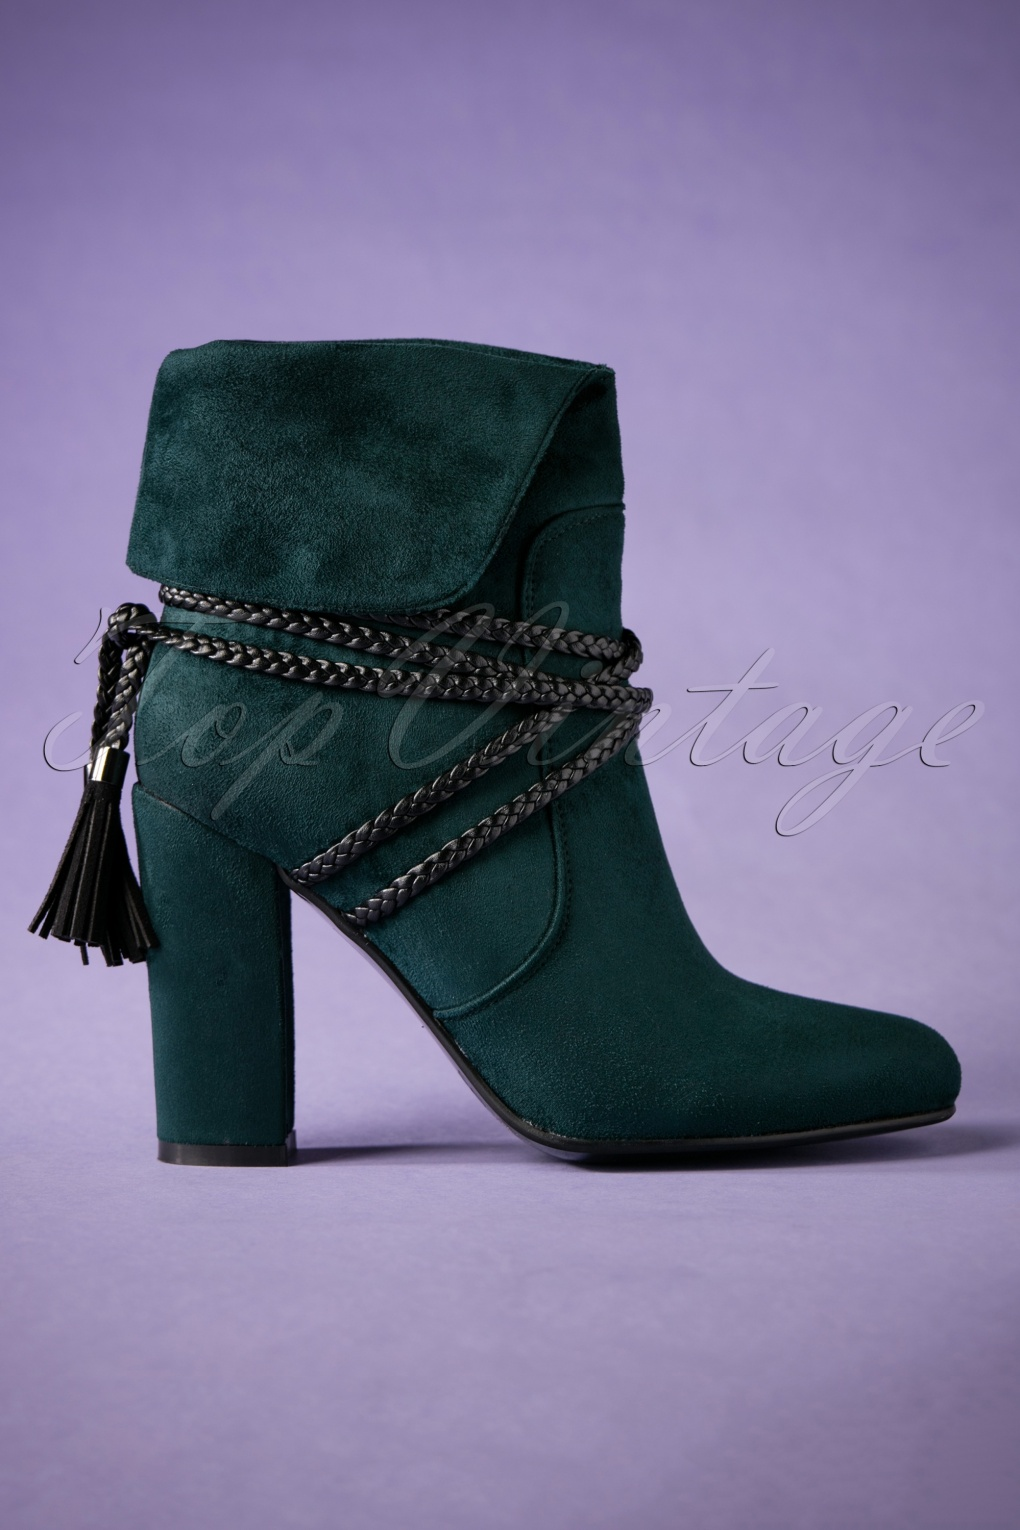 Retro Boots, Granny Boots, 70s Boots 70s Ivy Ankle Booties in Dark Green £88.75 AT vintagedancer.com